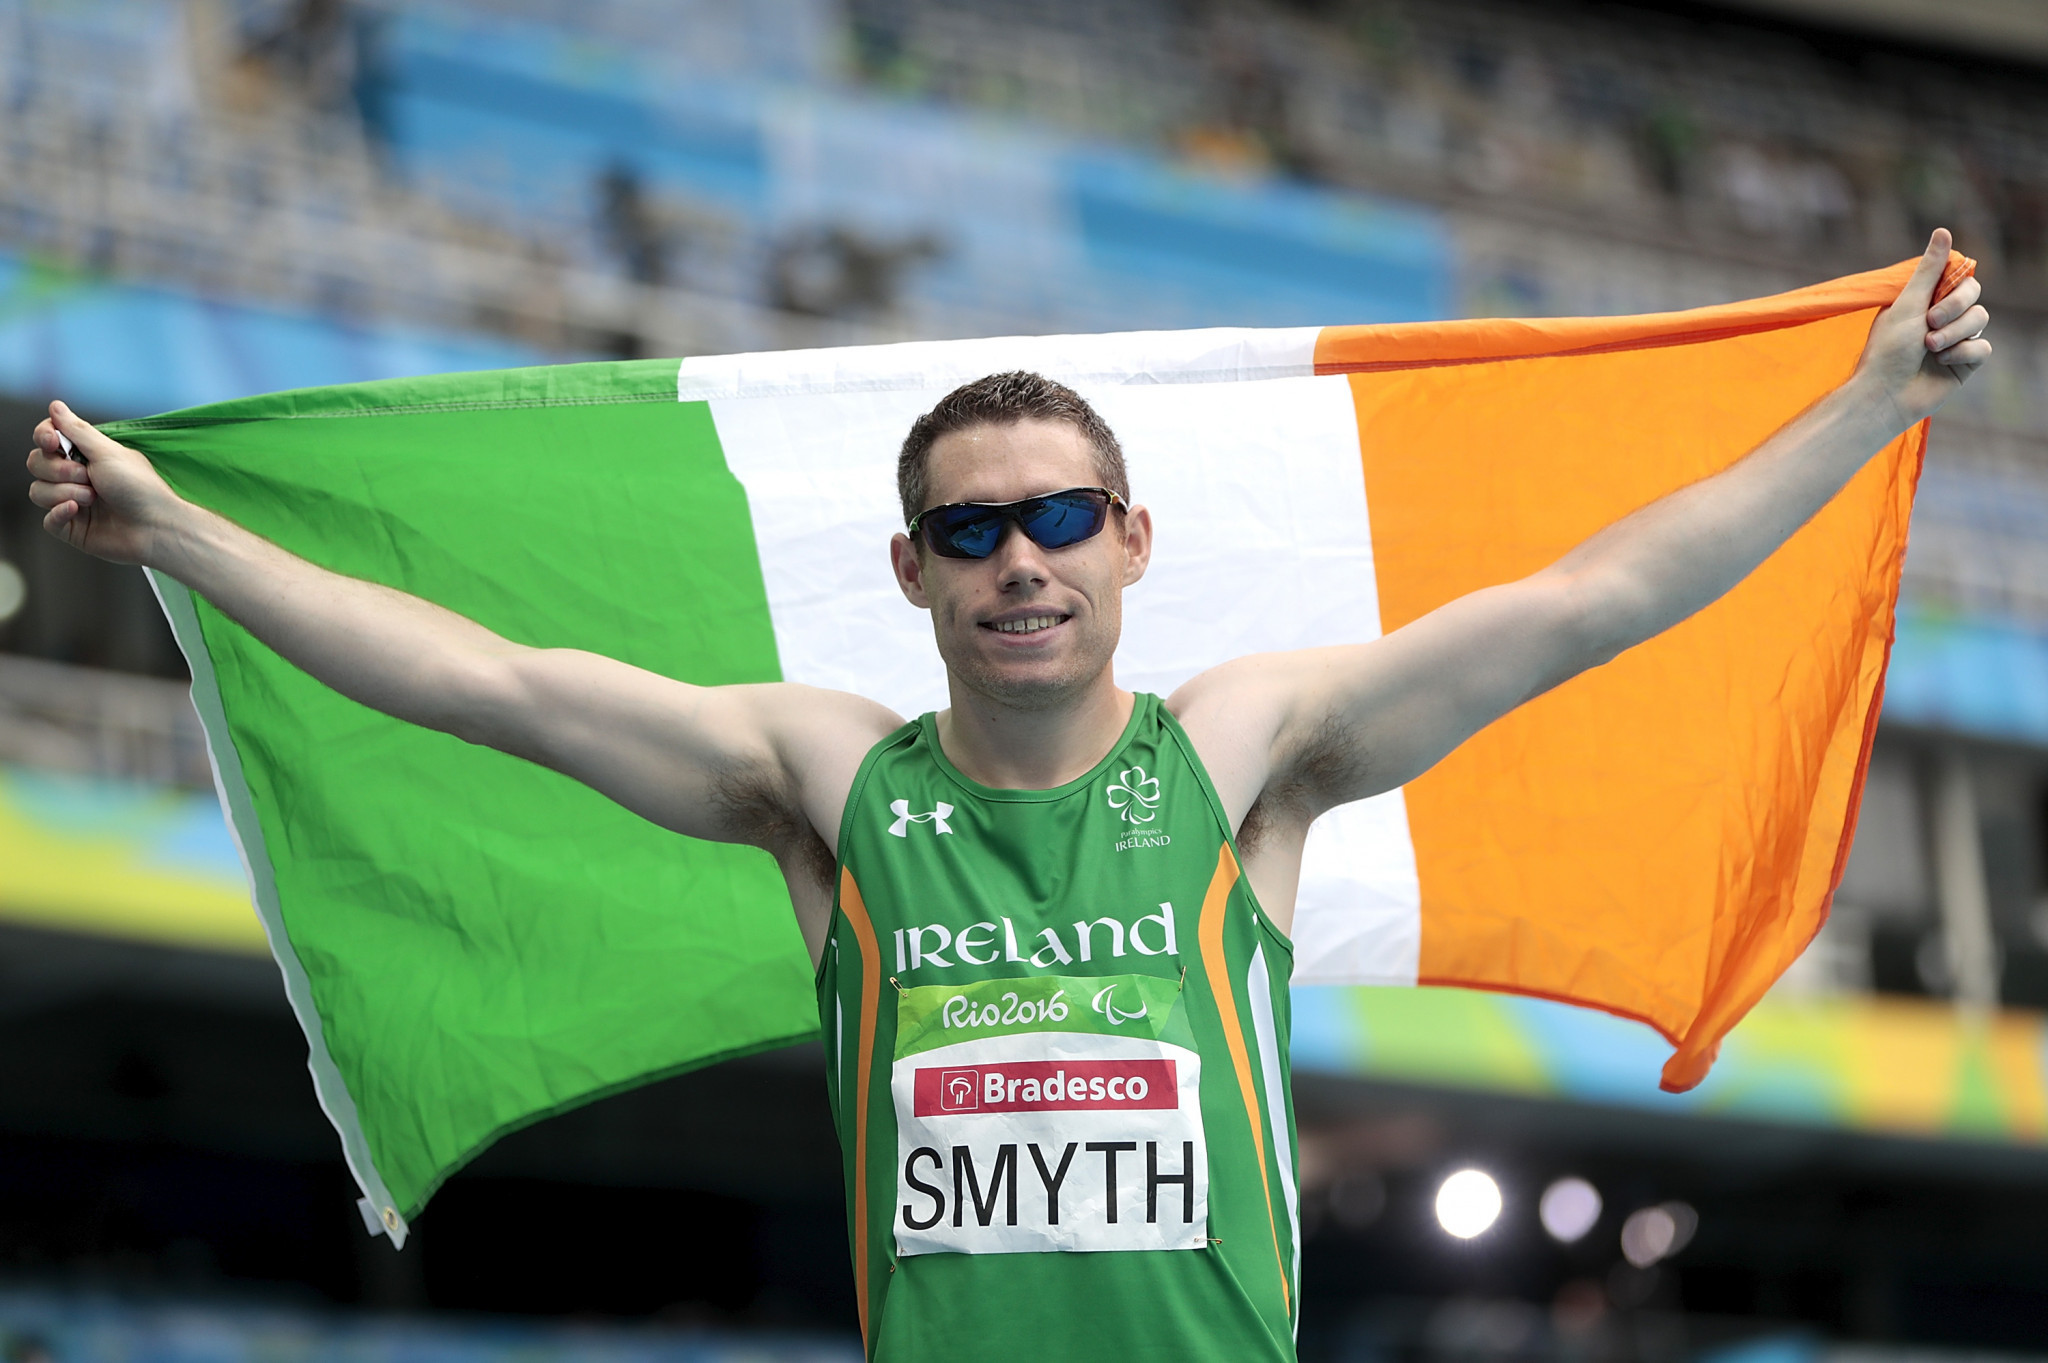 Denis Toomey served as Ireland's Chef de Mission at the Rio 2016 Paralympic Games, where sprinter Jason Smyth won one of the country's four gold medals ©Getty Images